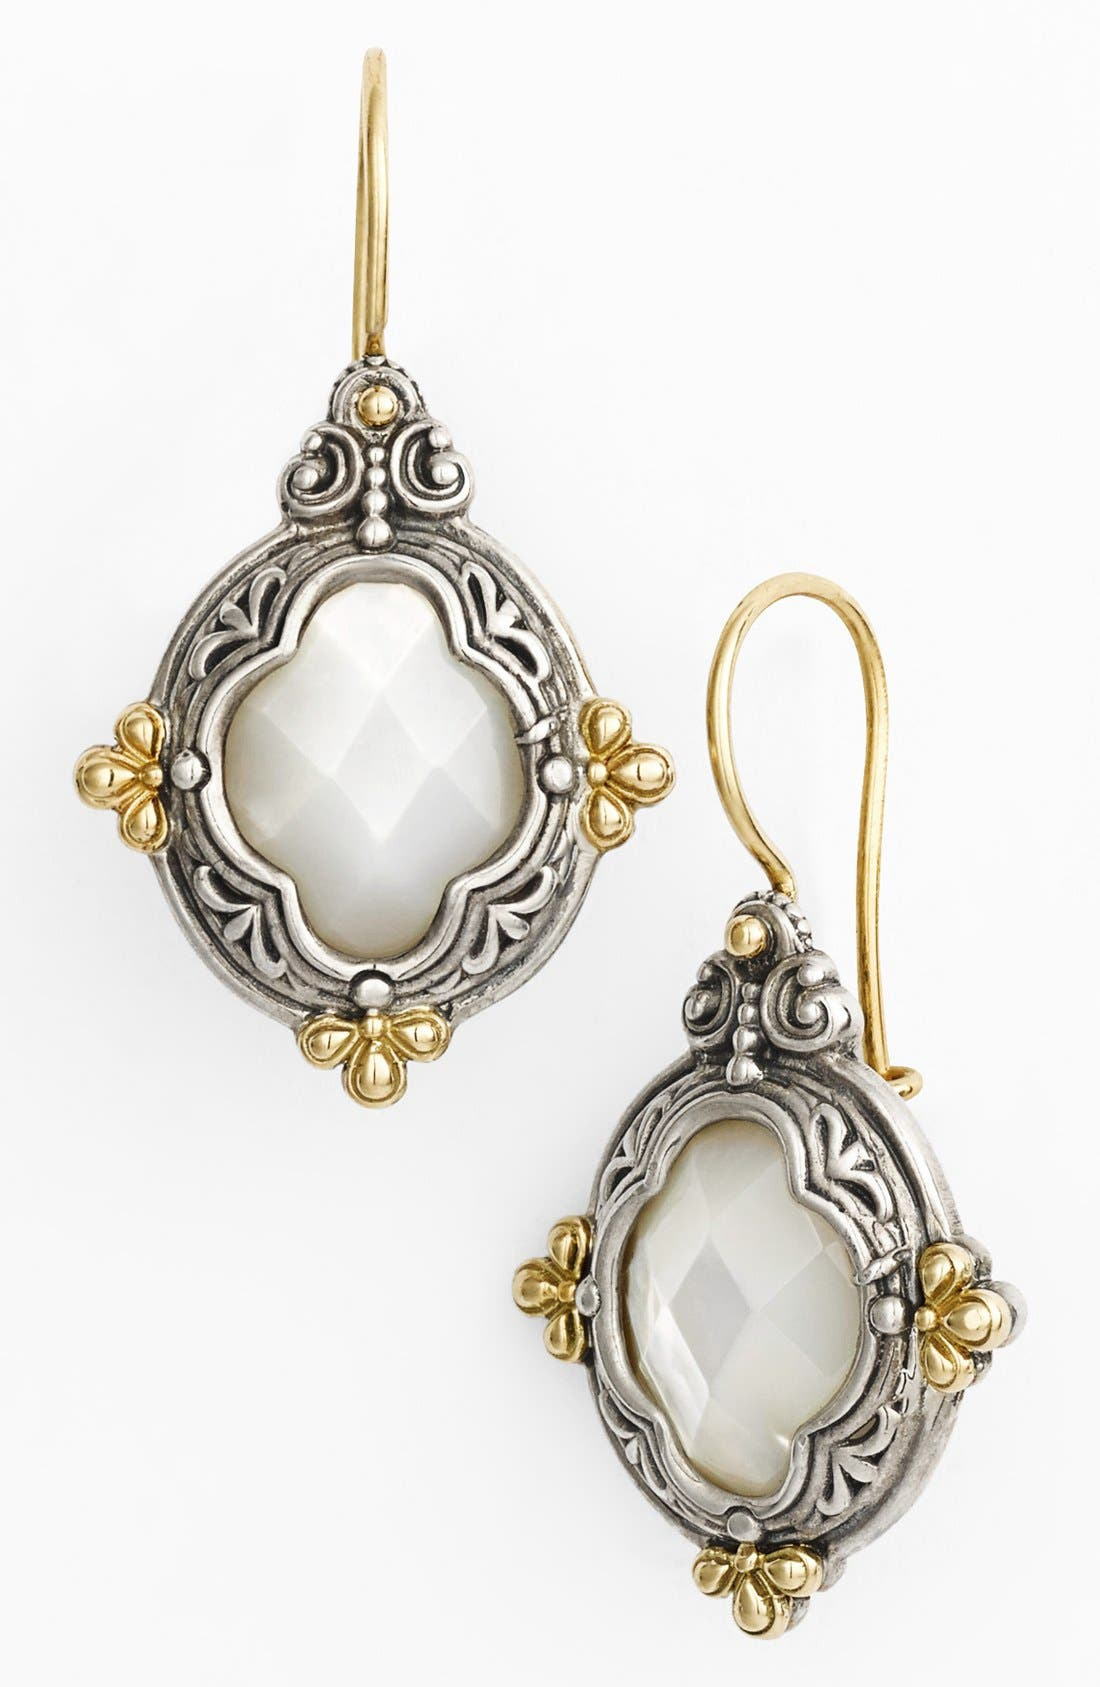 'Selene' Drop Earrings,                         Main,                         color, Silver/ Gold